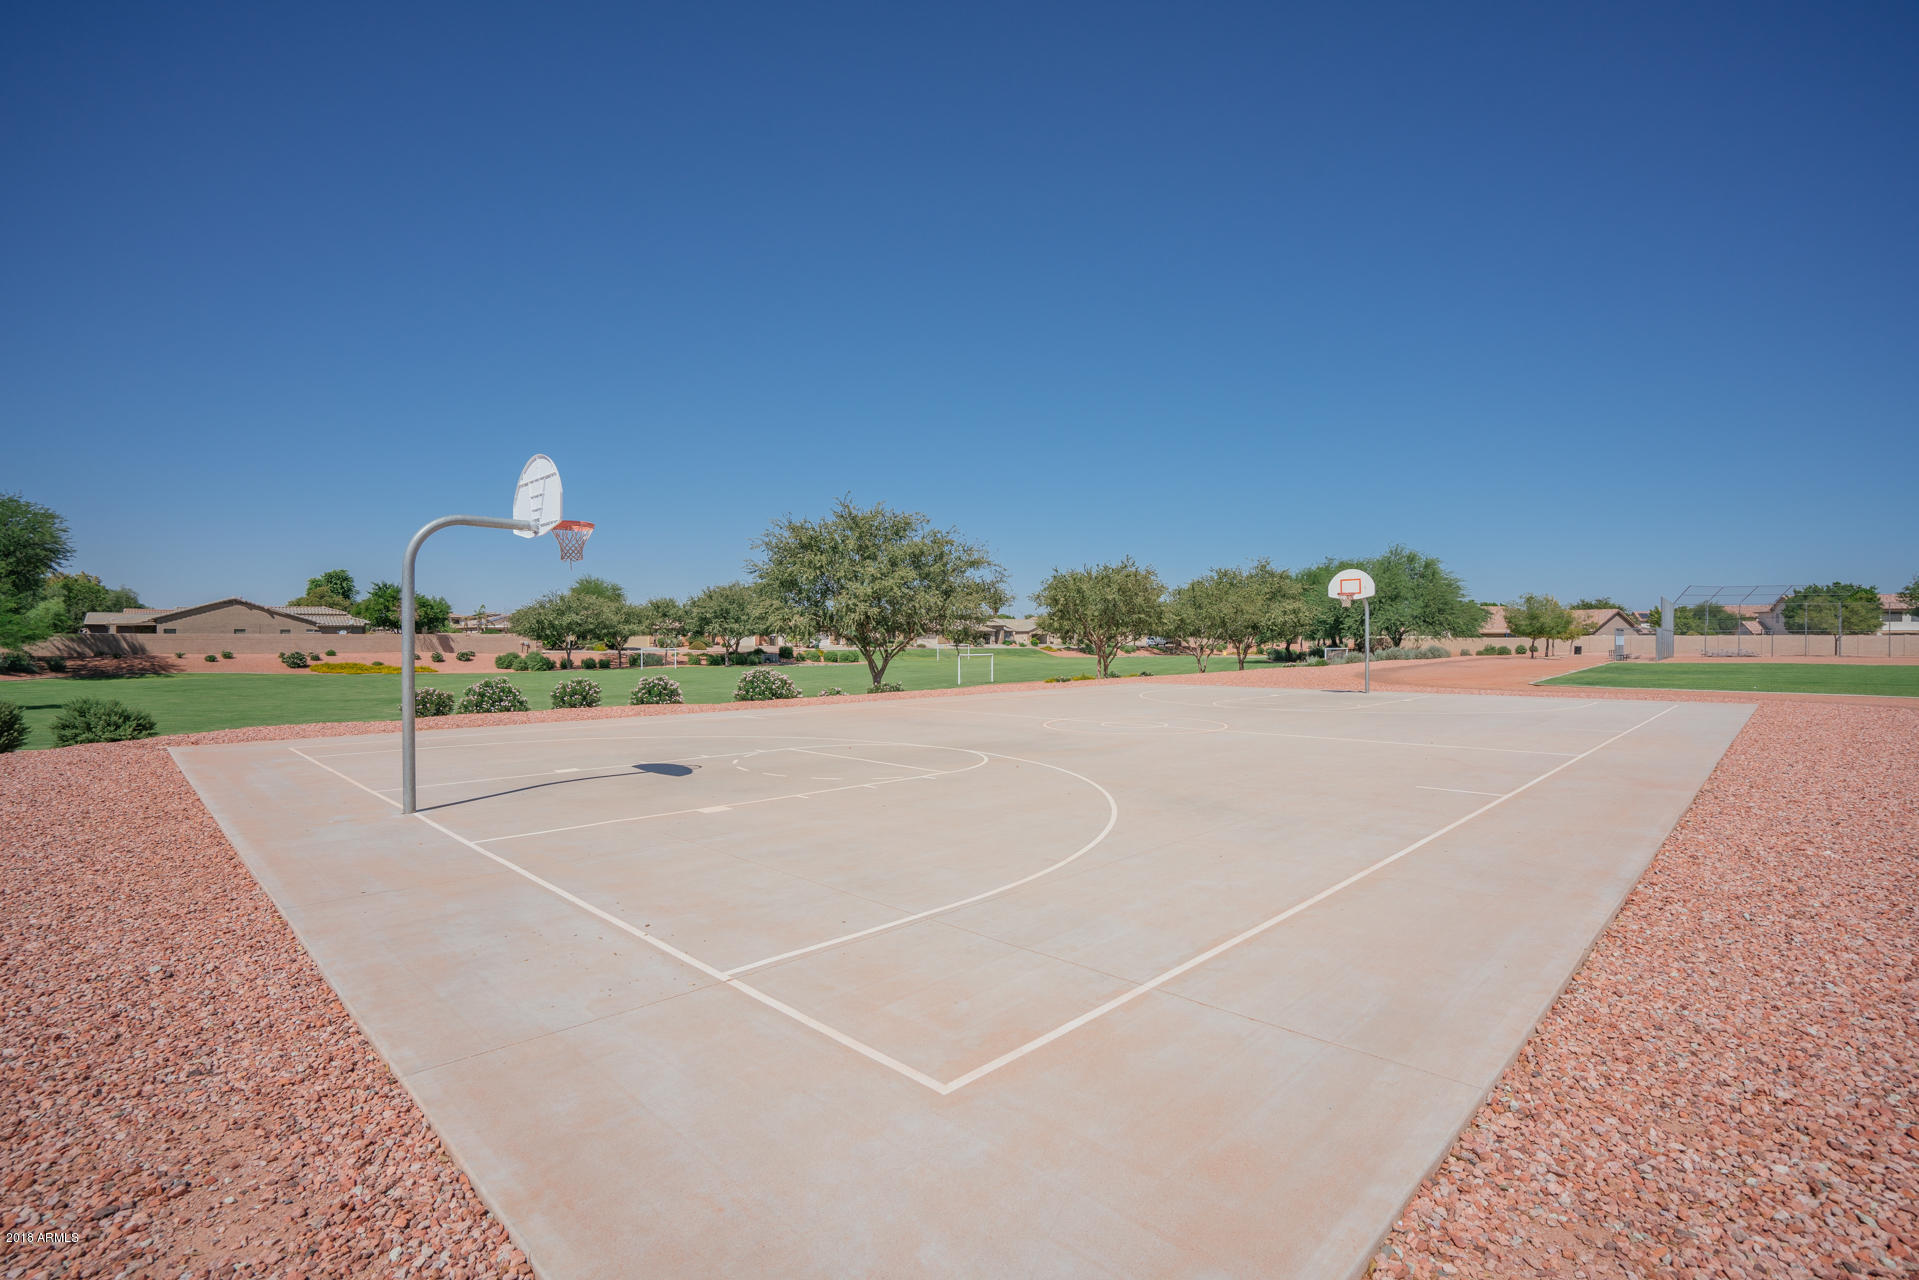 MLS 5826124 15610 W MARCONI Avenue, Surprise, AZ 85374 Surprise AZ Mountain Vista Ranch